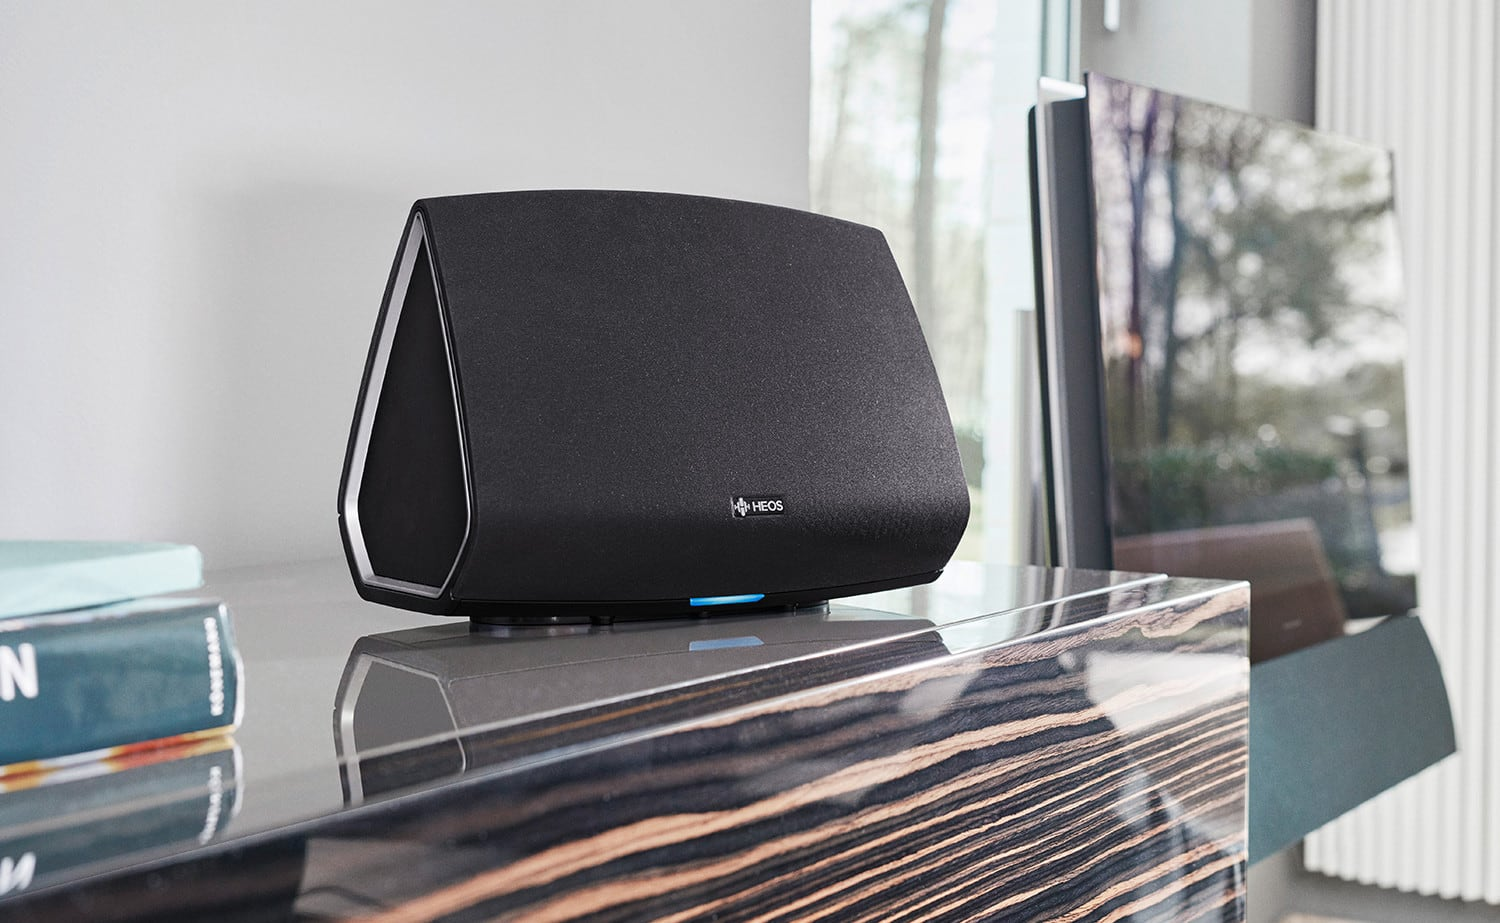 Denon HEOS 5 Multi-Room Media System plays music from any source